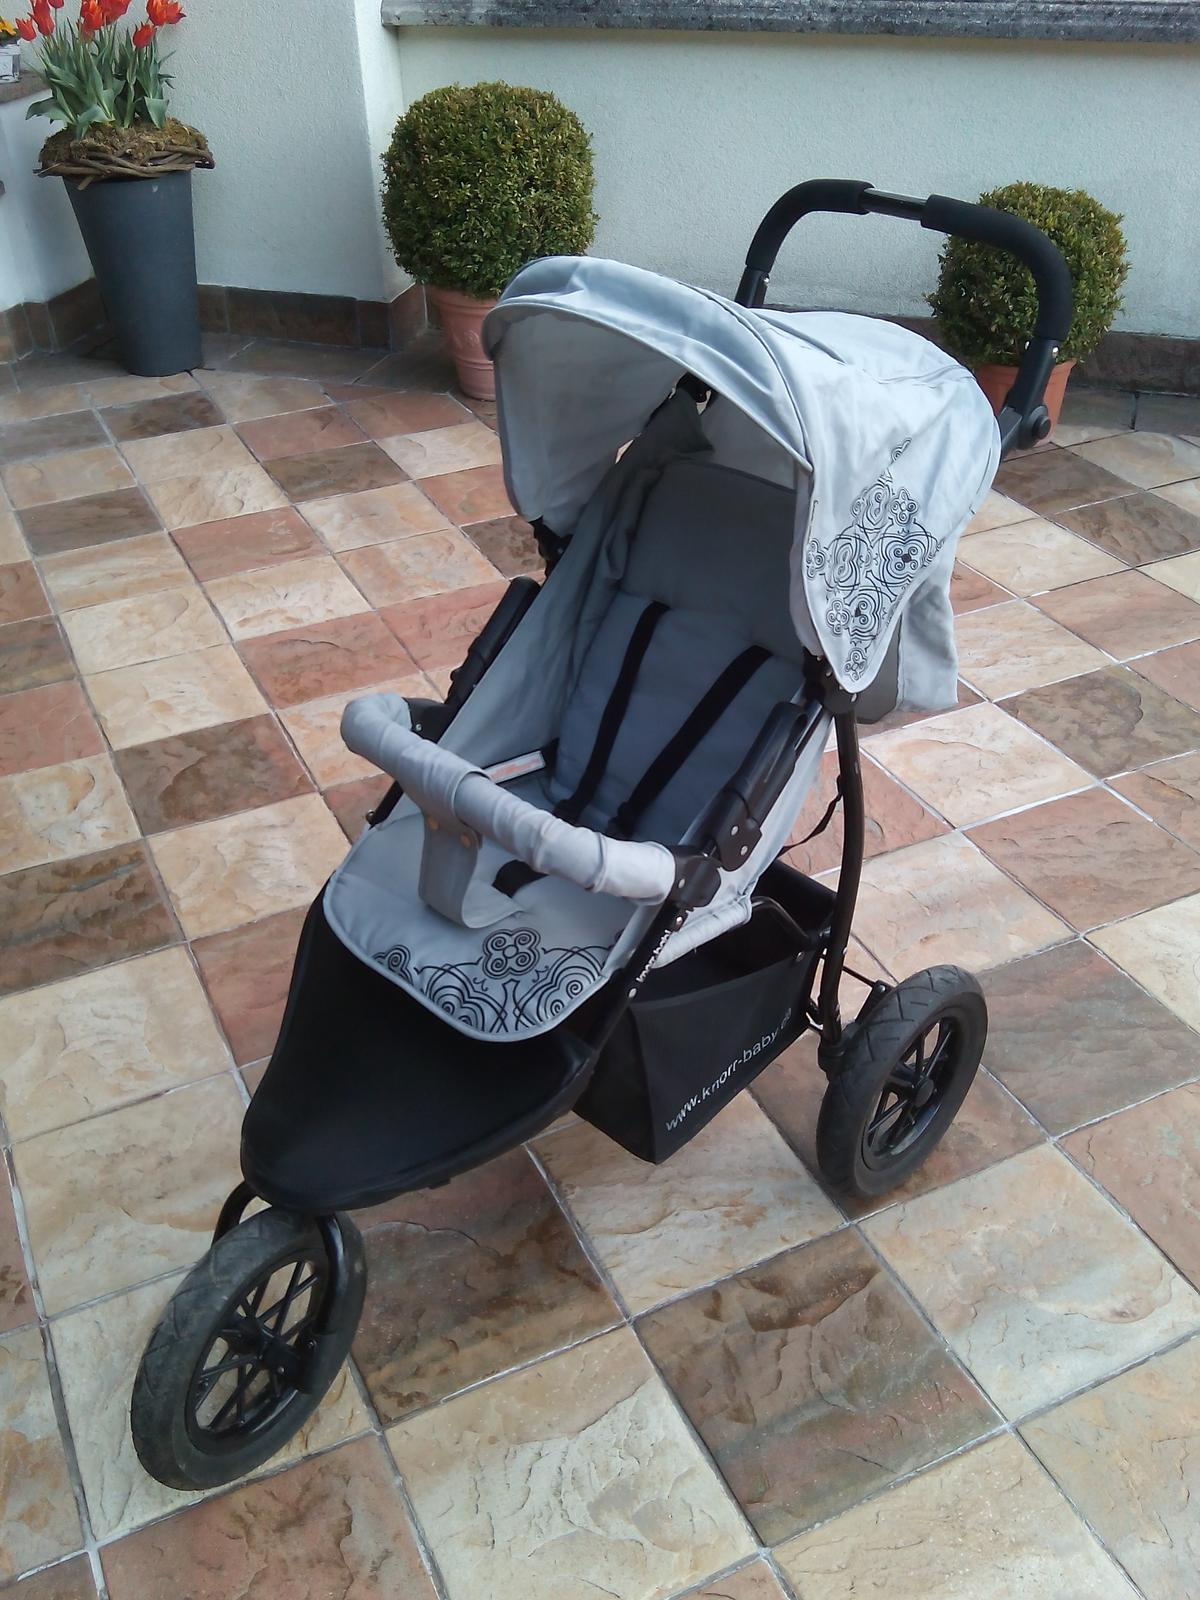 Knorr Baby Buggy Styler Test Knorr Buggy Joggy S Elegant Knorr Joggy S Jogger Mit